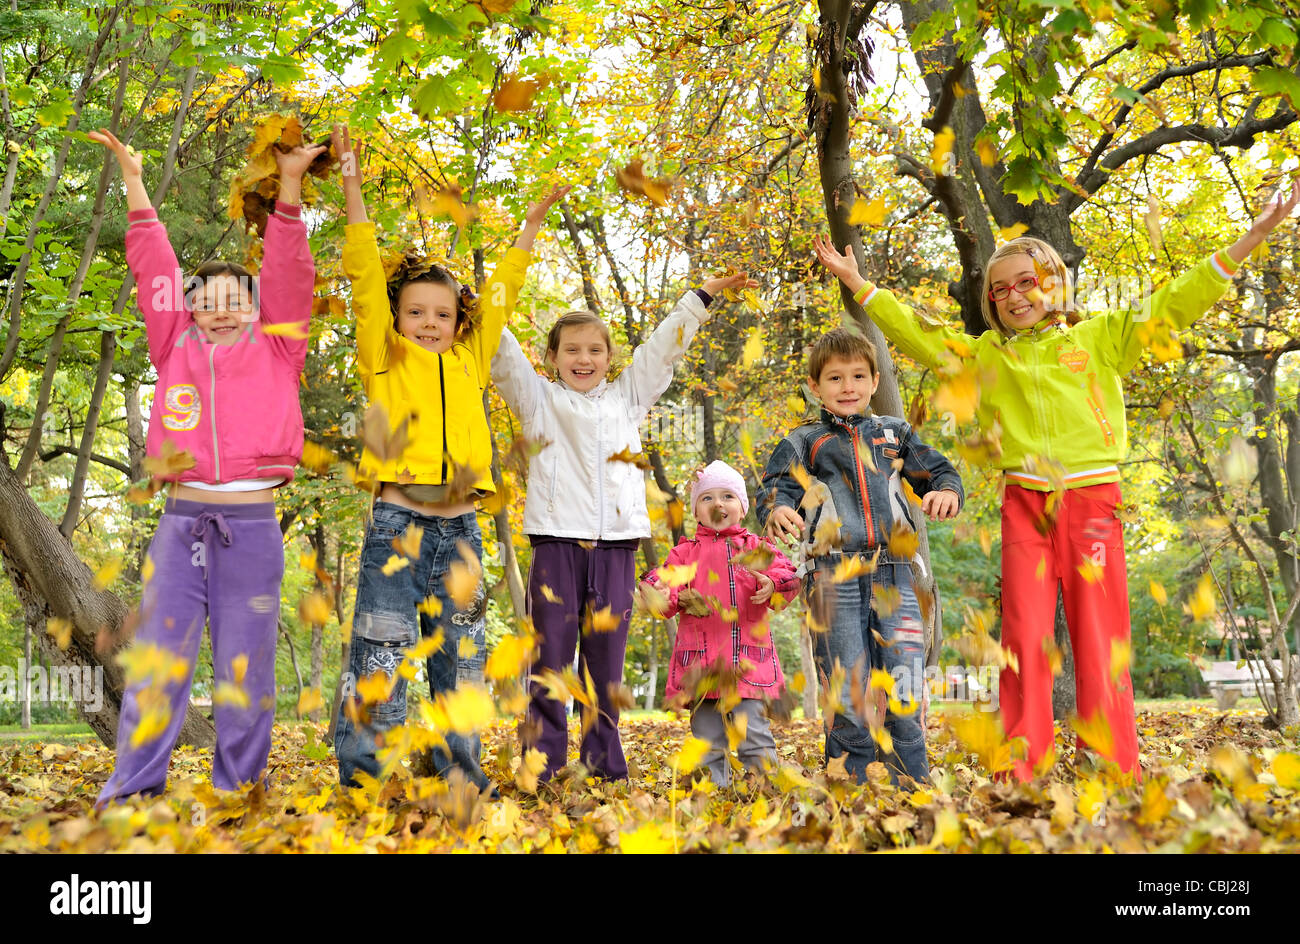 kids playing with leaves - Stock Image